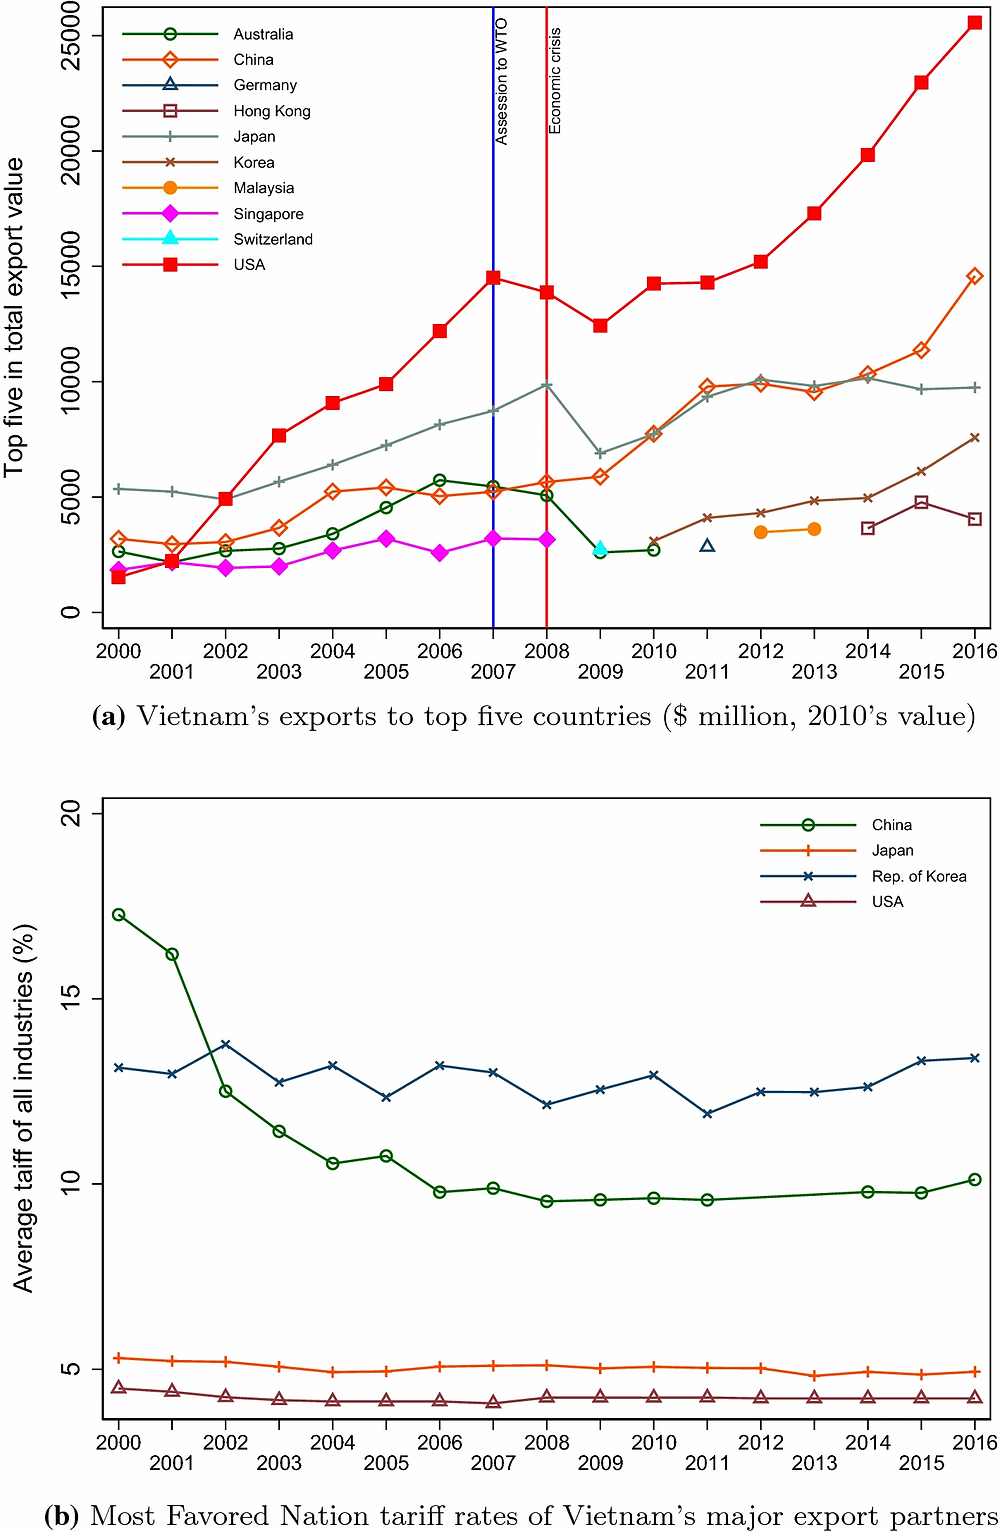 Export values and tariff rates